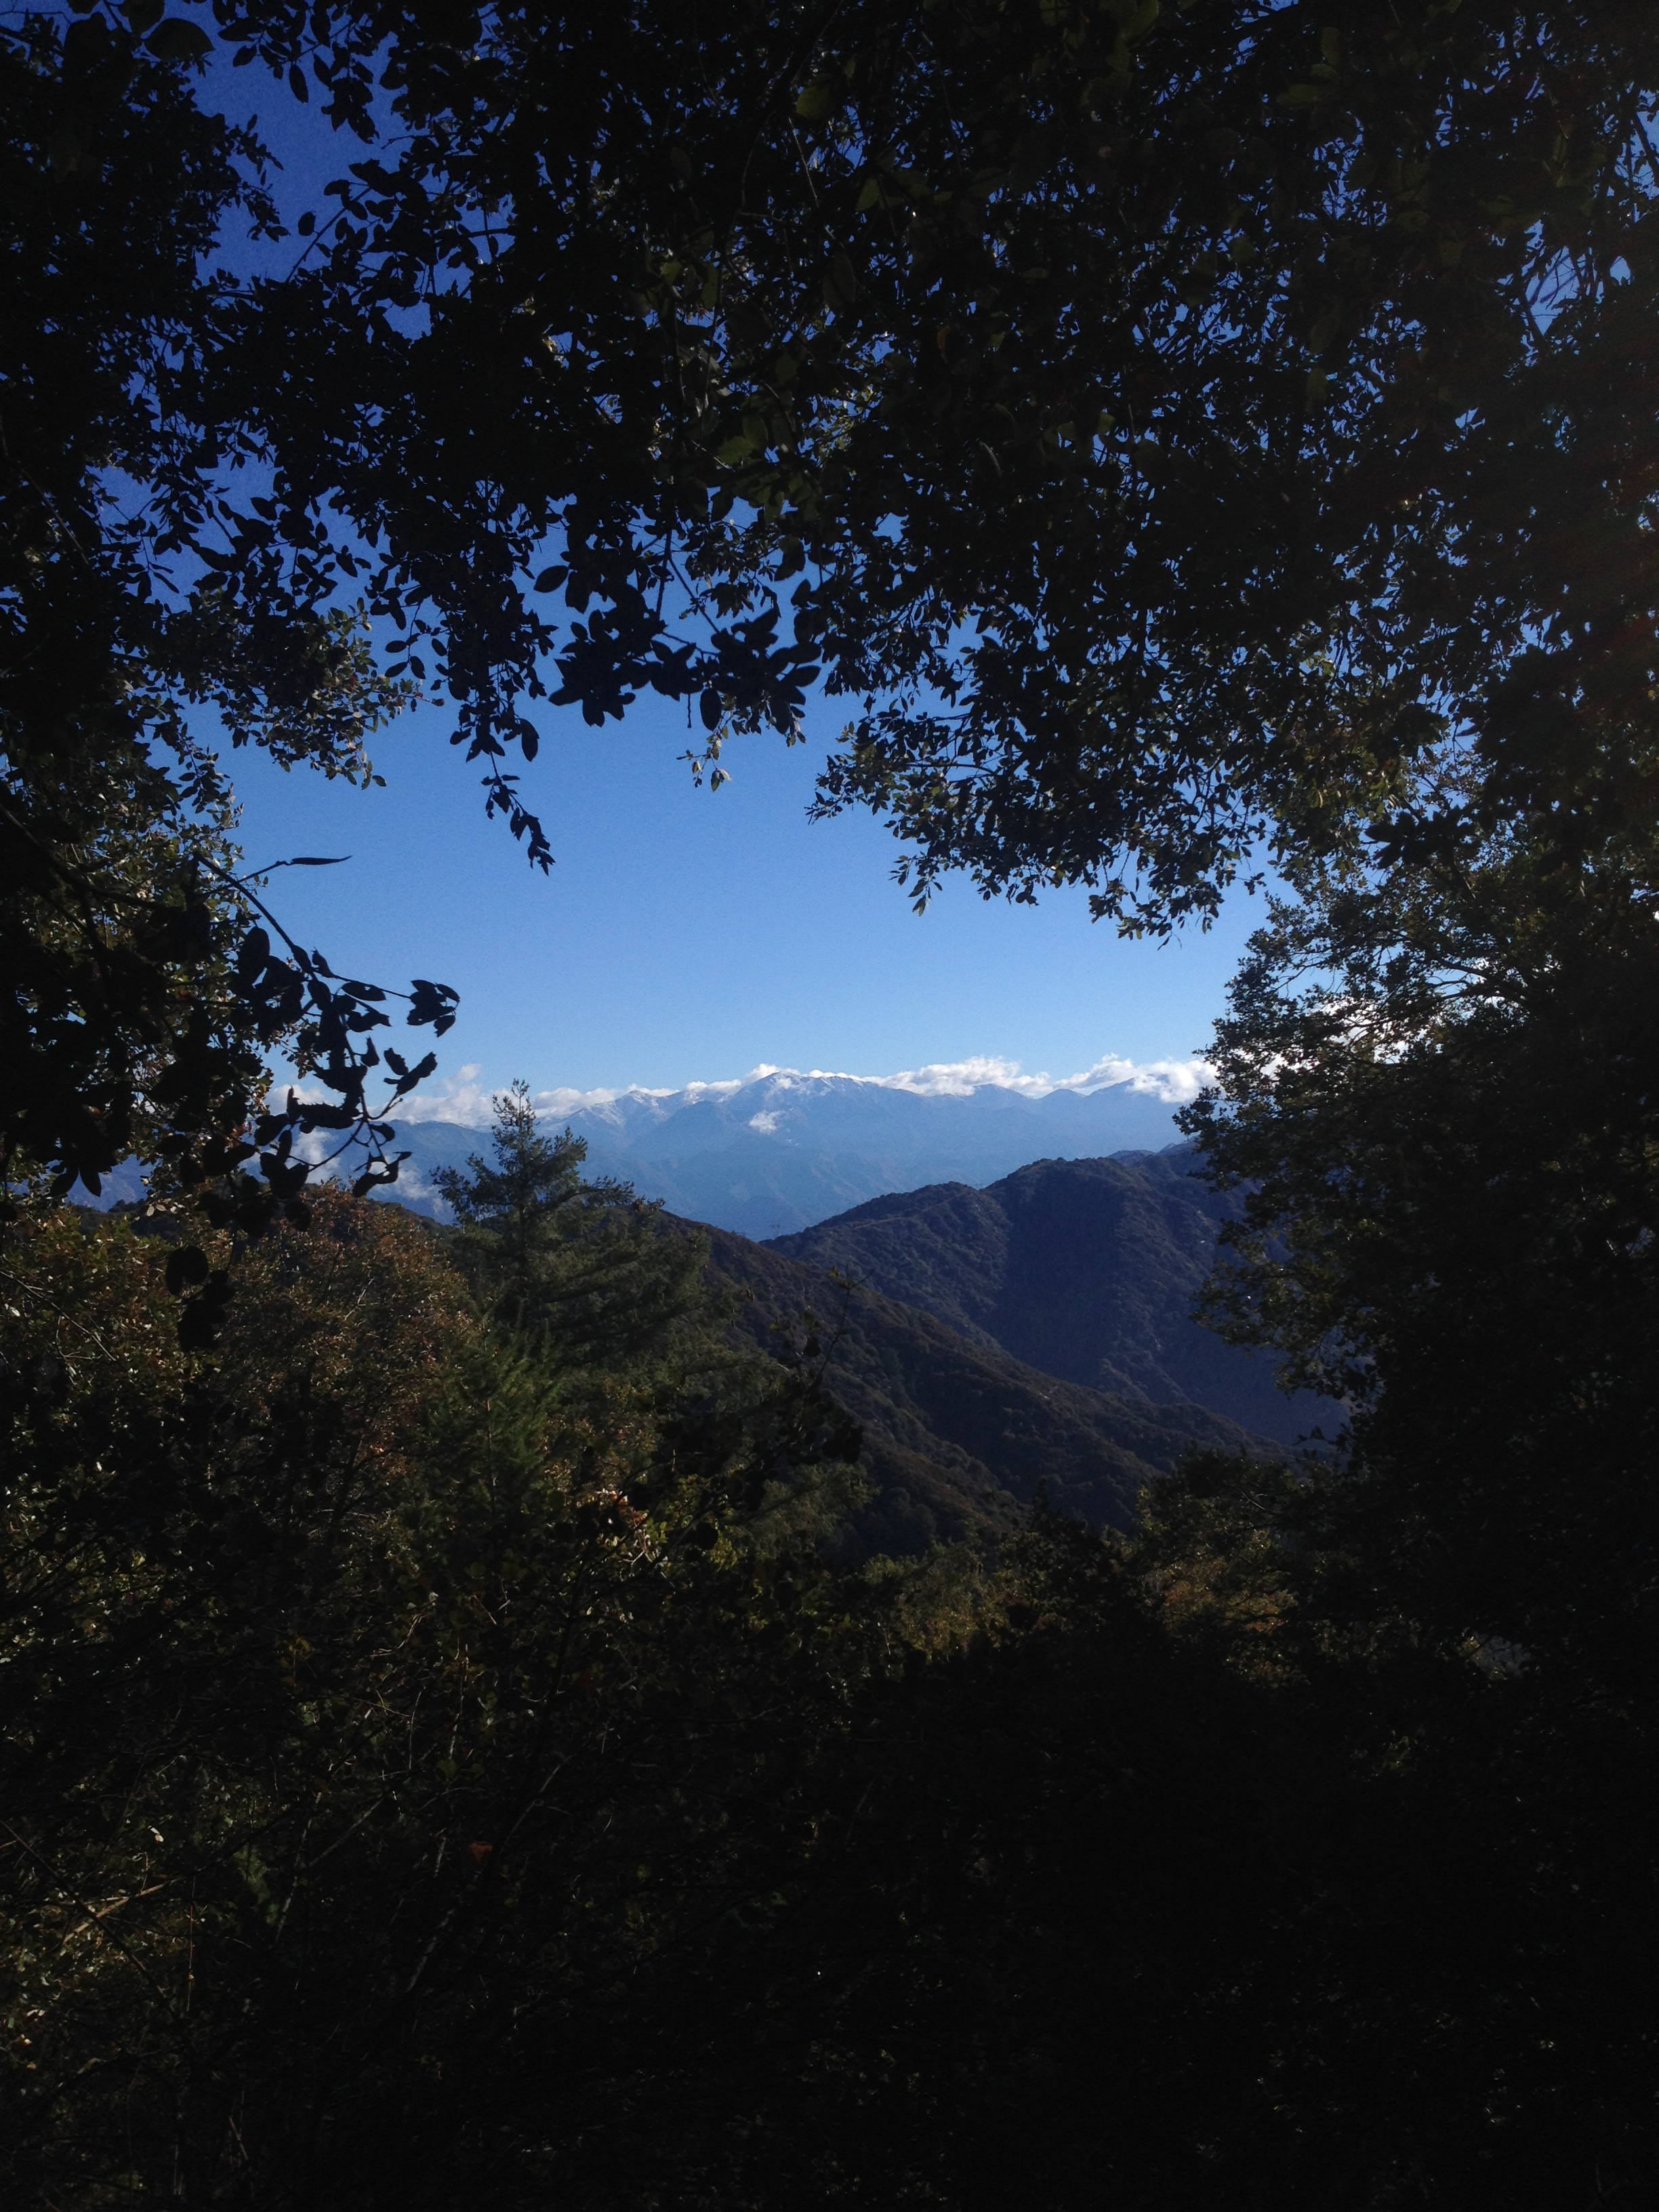 mt baldy view from mt wilson